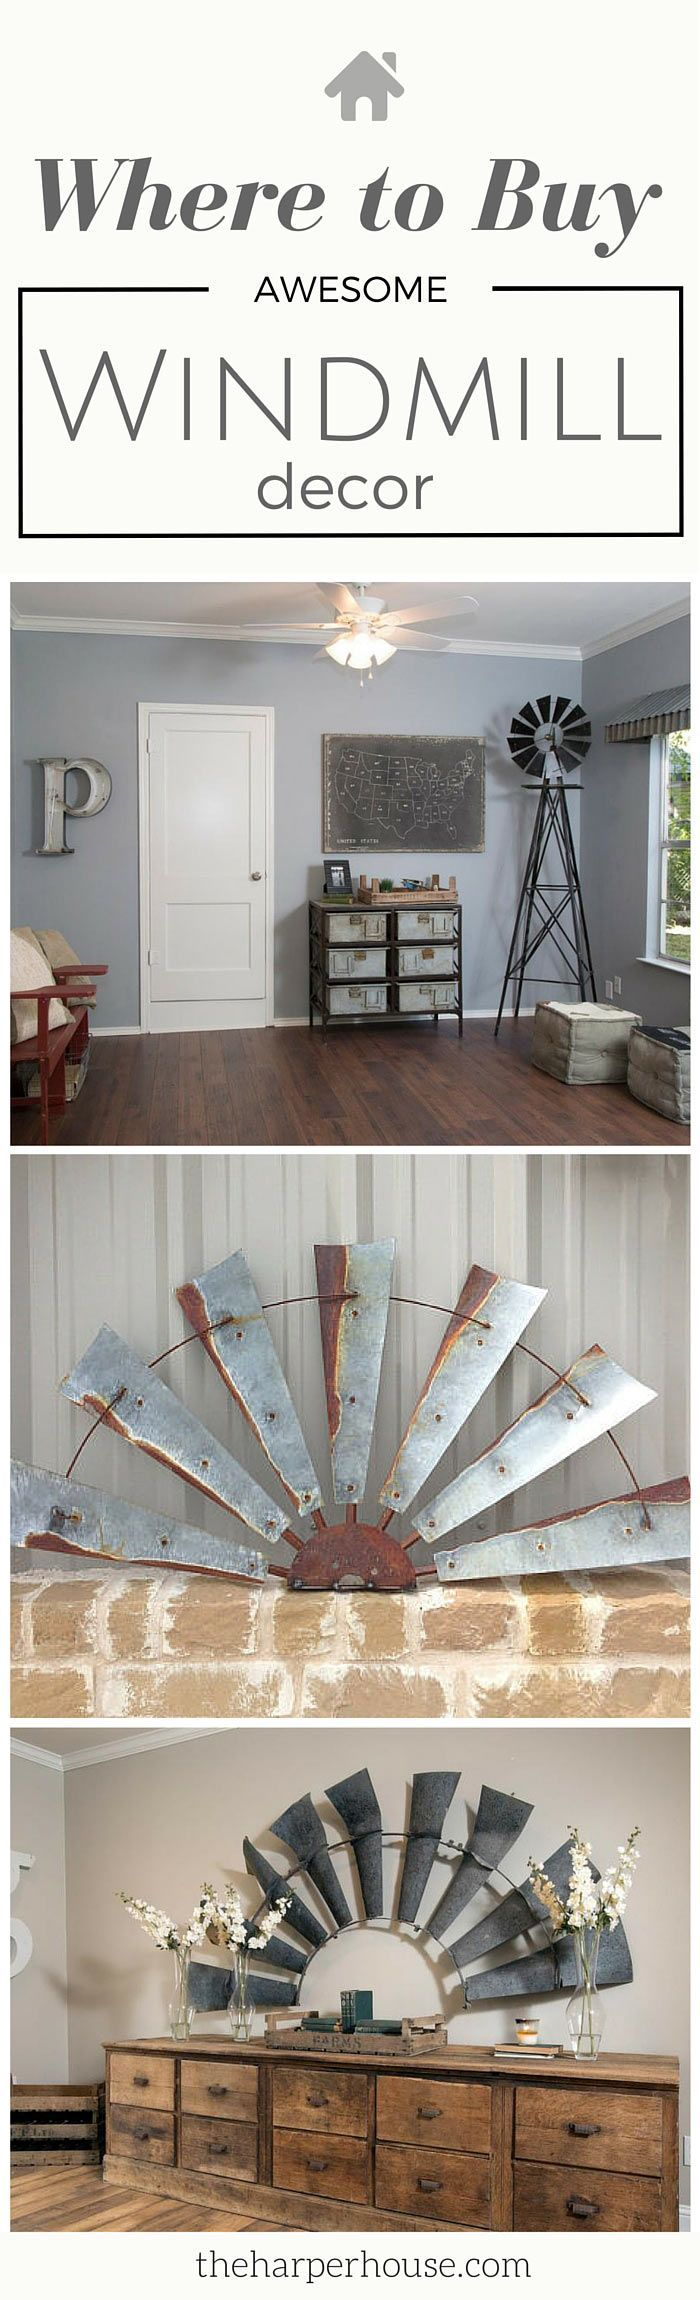 This is awesome! I've always wondered where to buy Fixer Upper windmill decor just like Joanna Gaines uses in her designs! http://www.theharperhouse.com